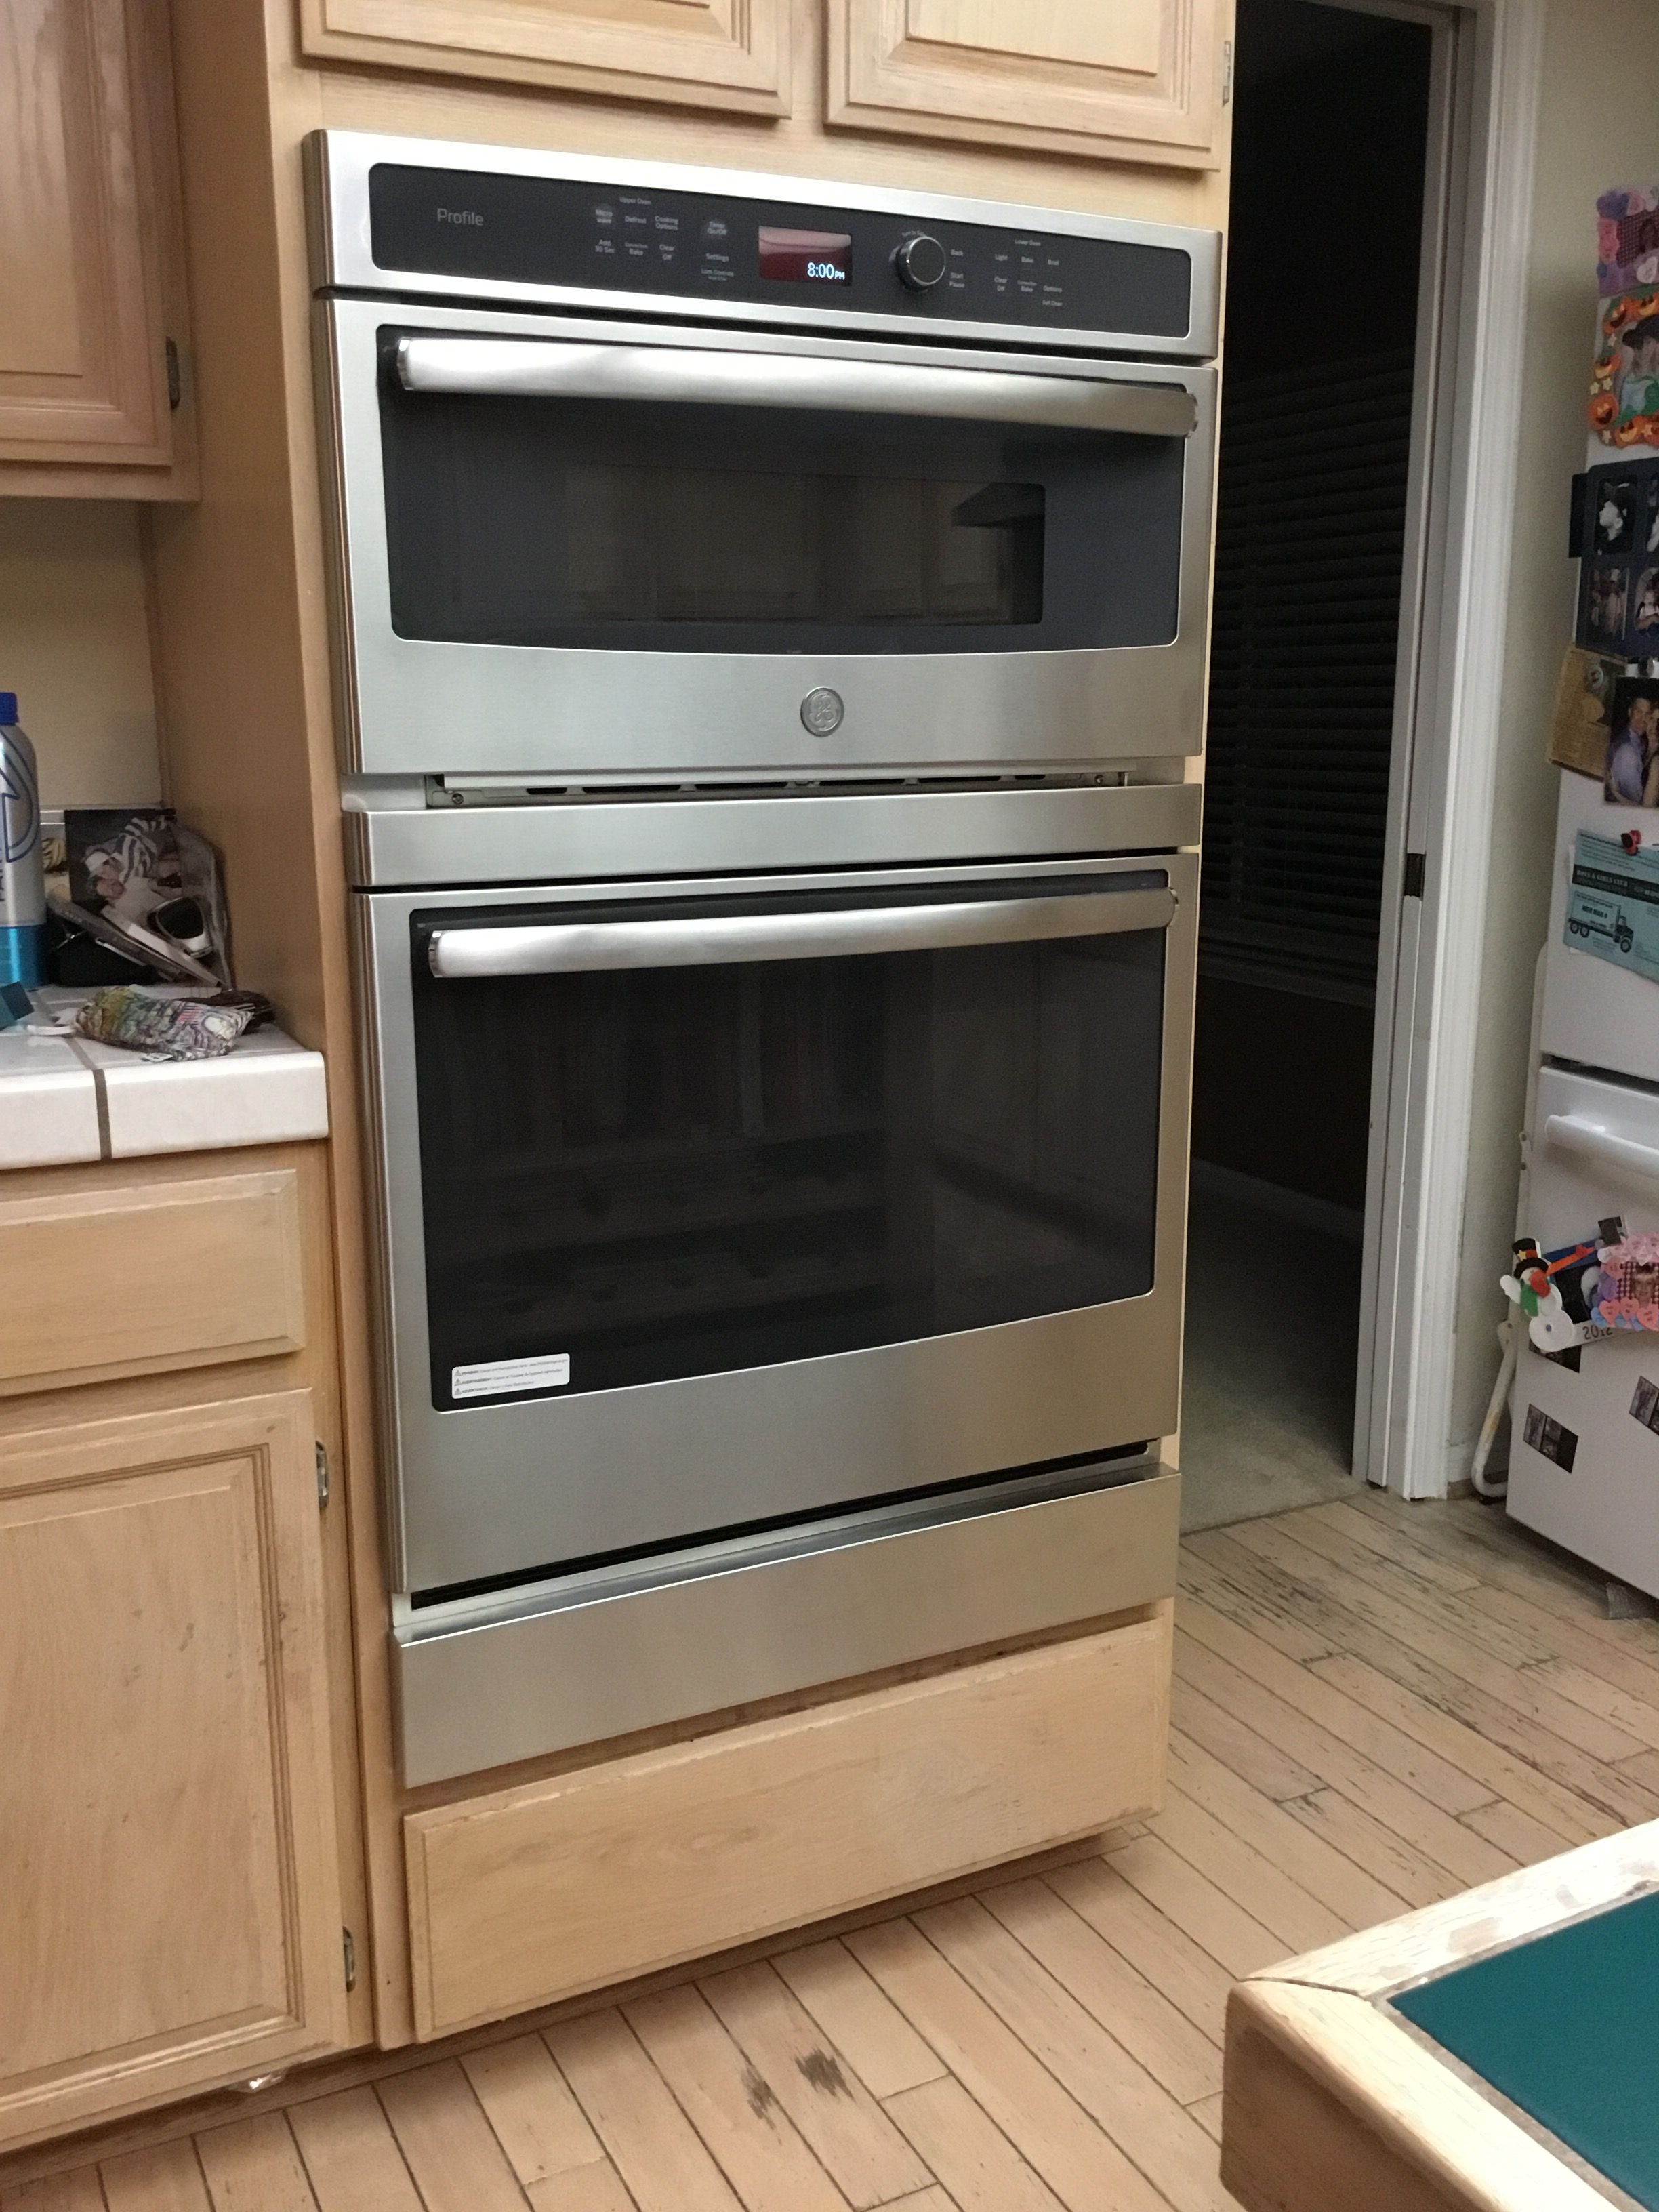 Wall Oven Filler Strip For A Ge Profile Model Pt7800sh8ss In 2020 Wall Oven Design Your Kitchen Microwave Drawer